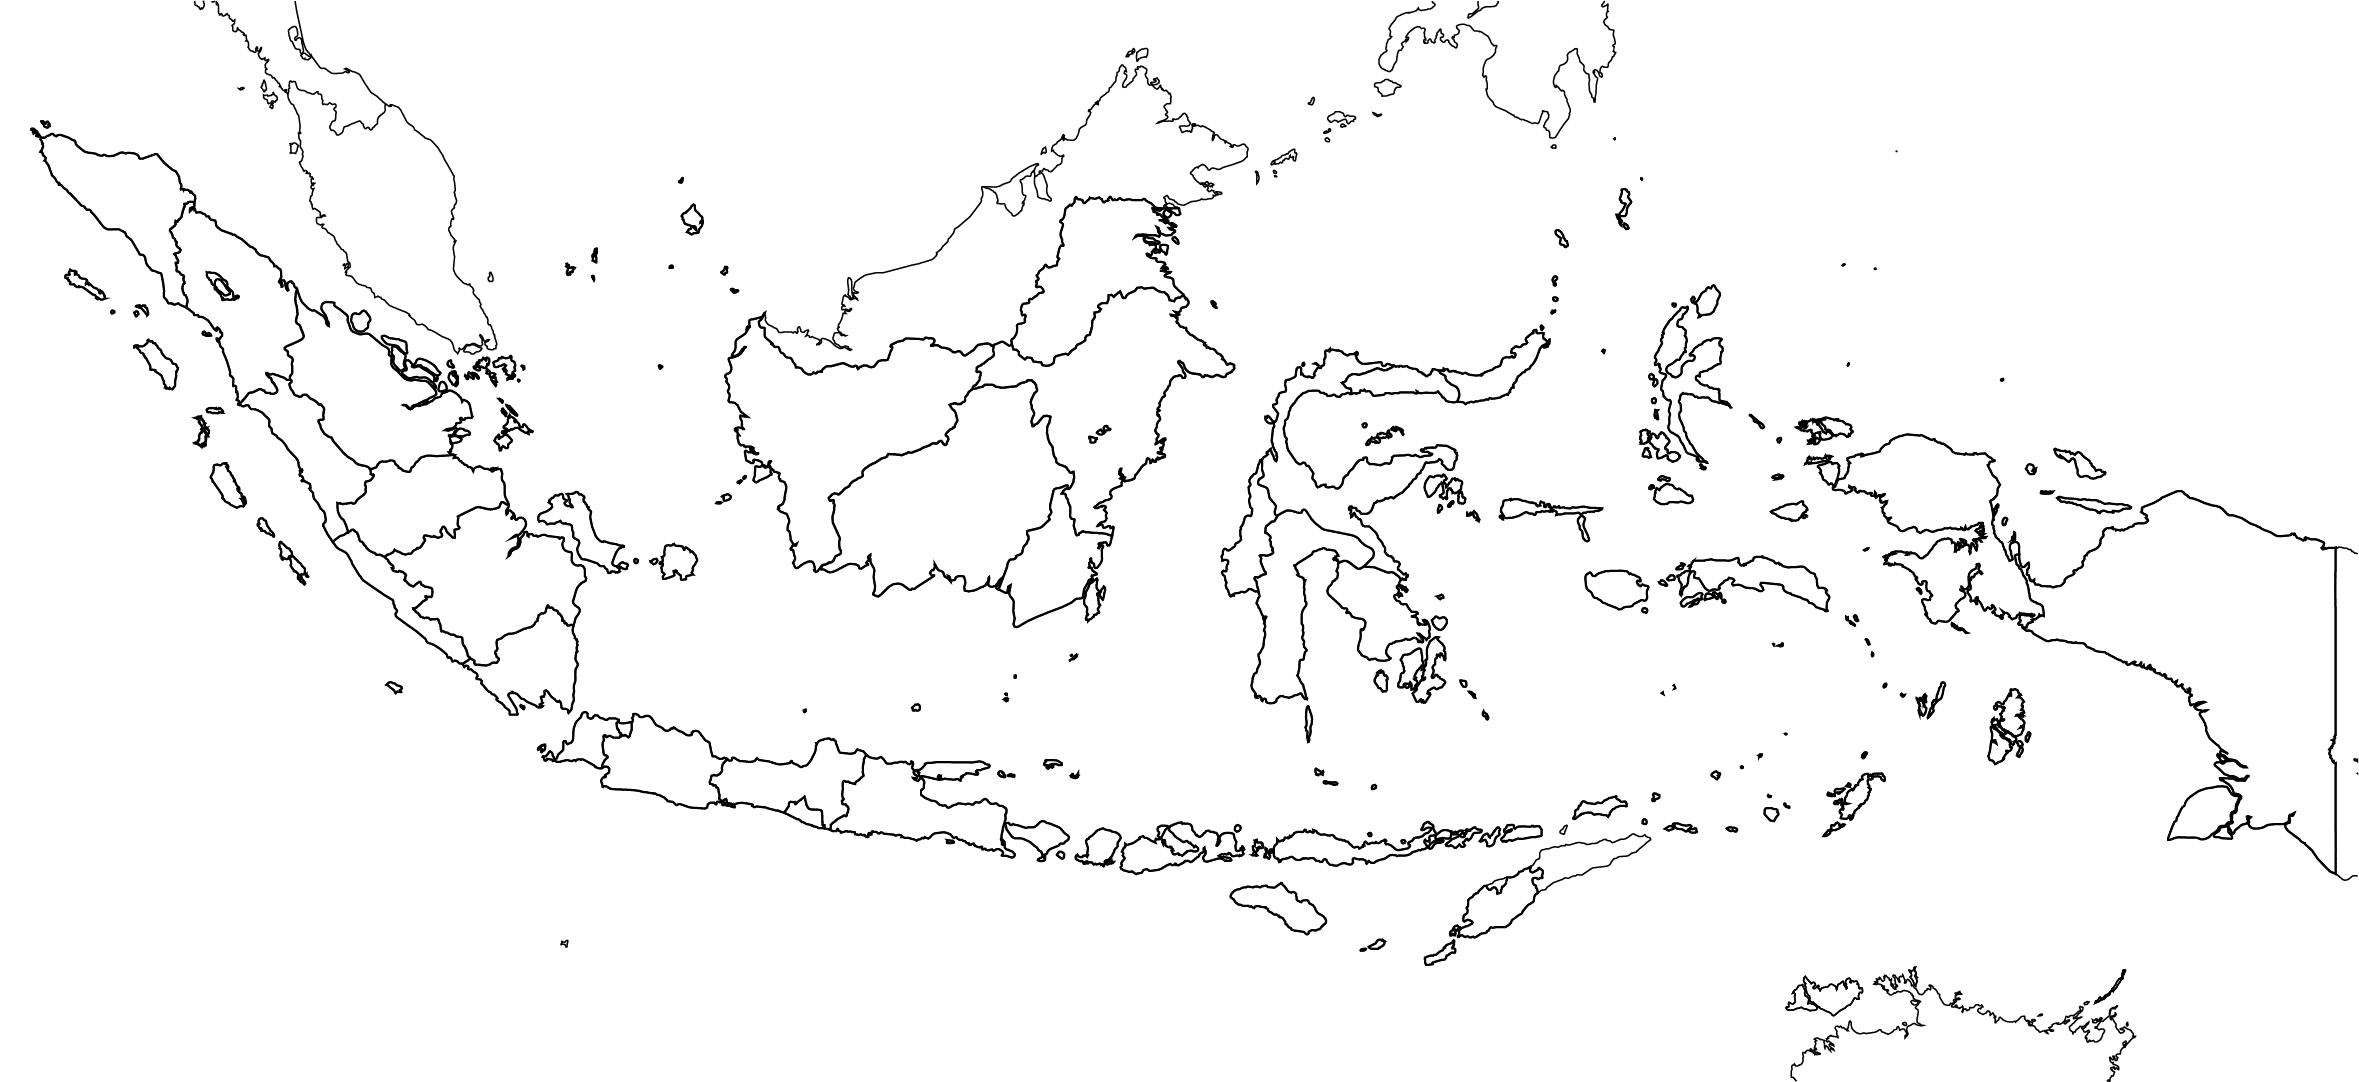 .wikimedia.org/wikipedia/commons/3/39/Indonesia_provinces_blank.png